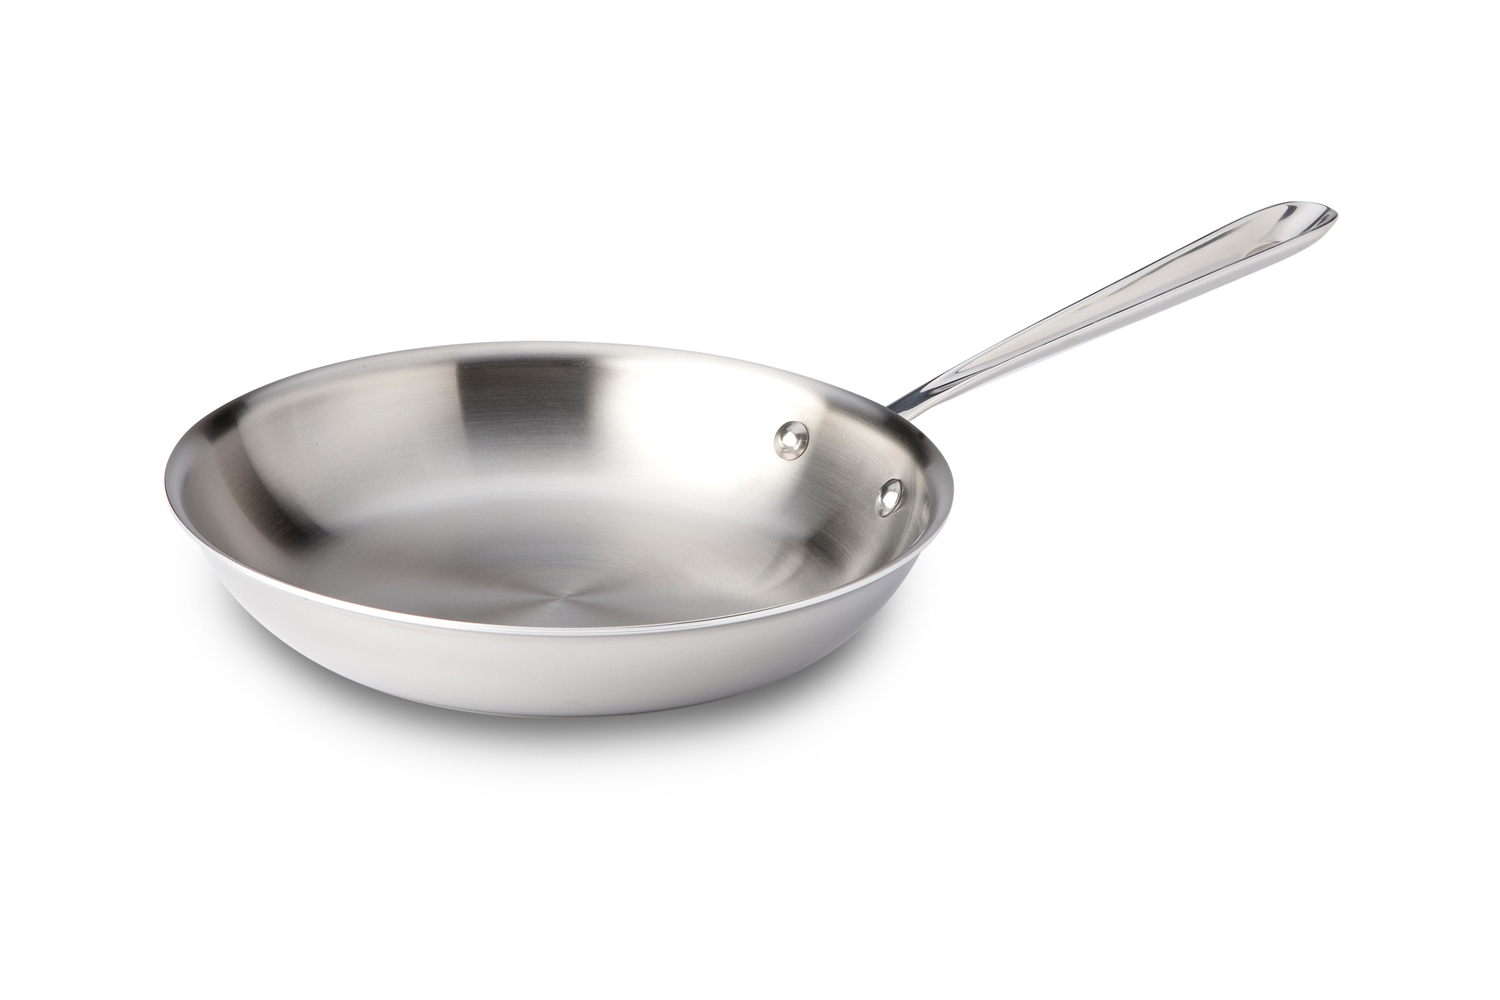 All-Clad d3 Tri-Ply Stainless Steel 10 inch Fry Pan